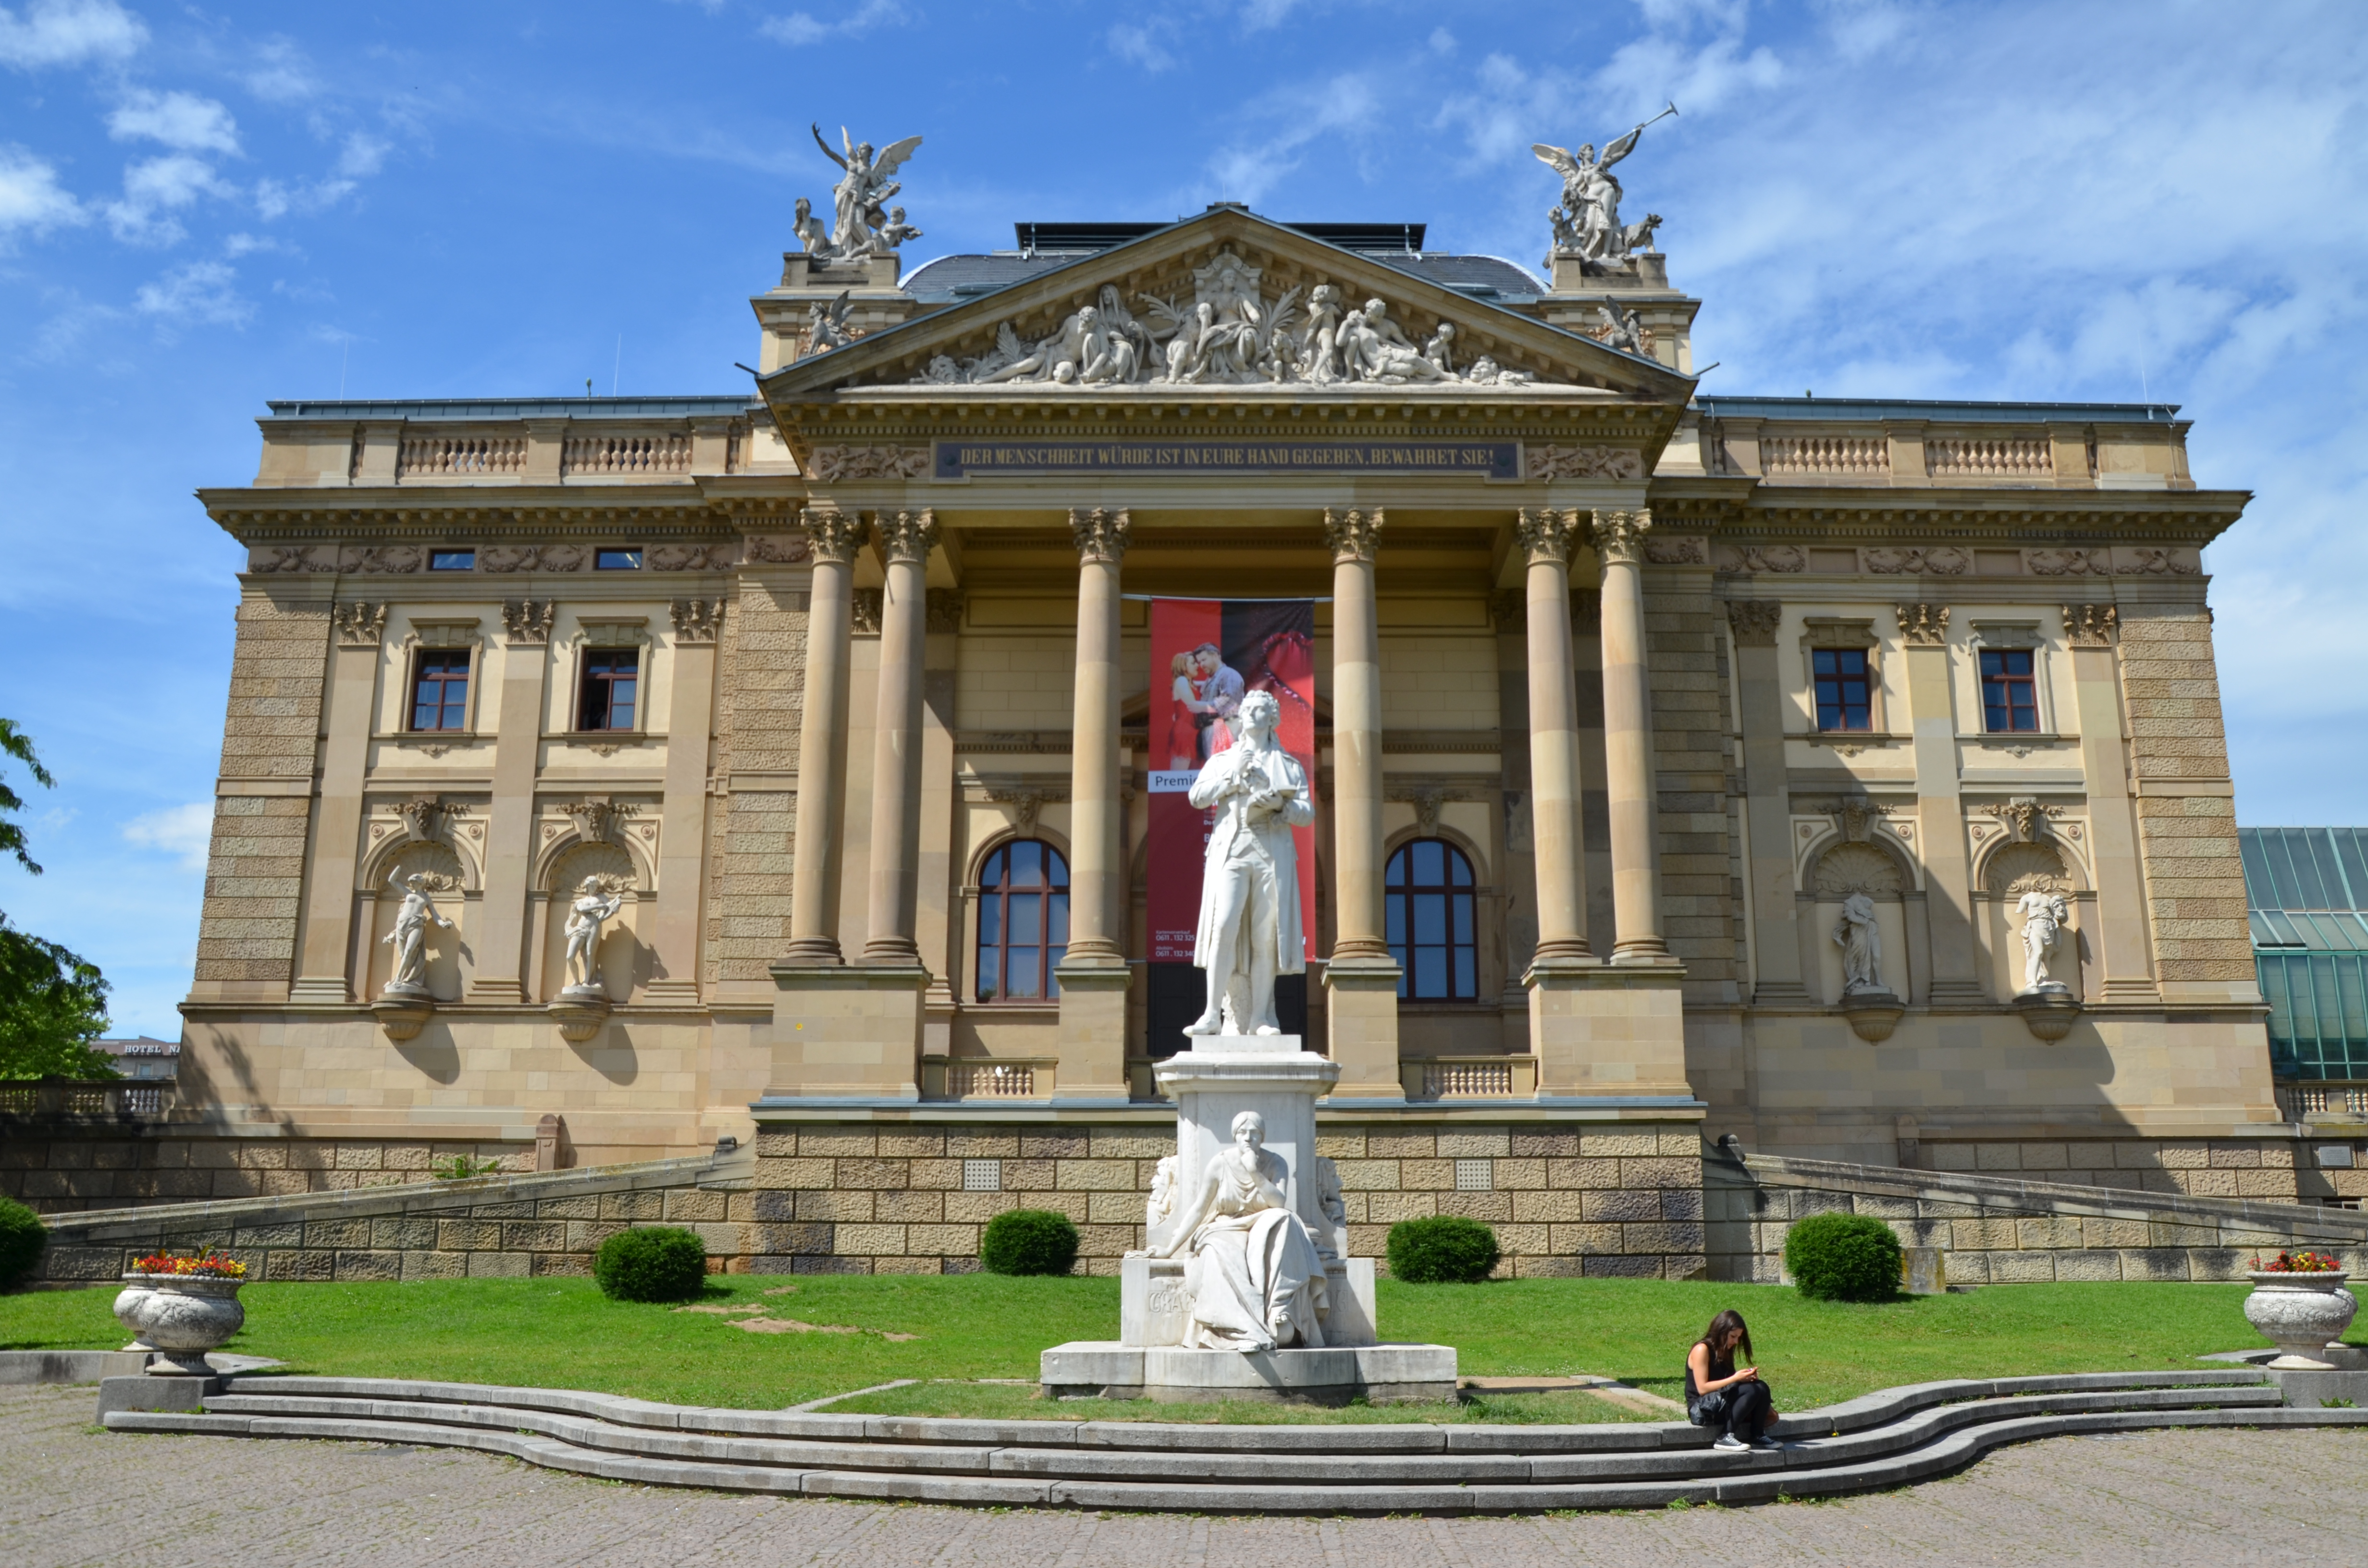 File:Wiesbaden, Neoclassical architecture (9066817725).jpg ...